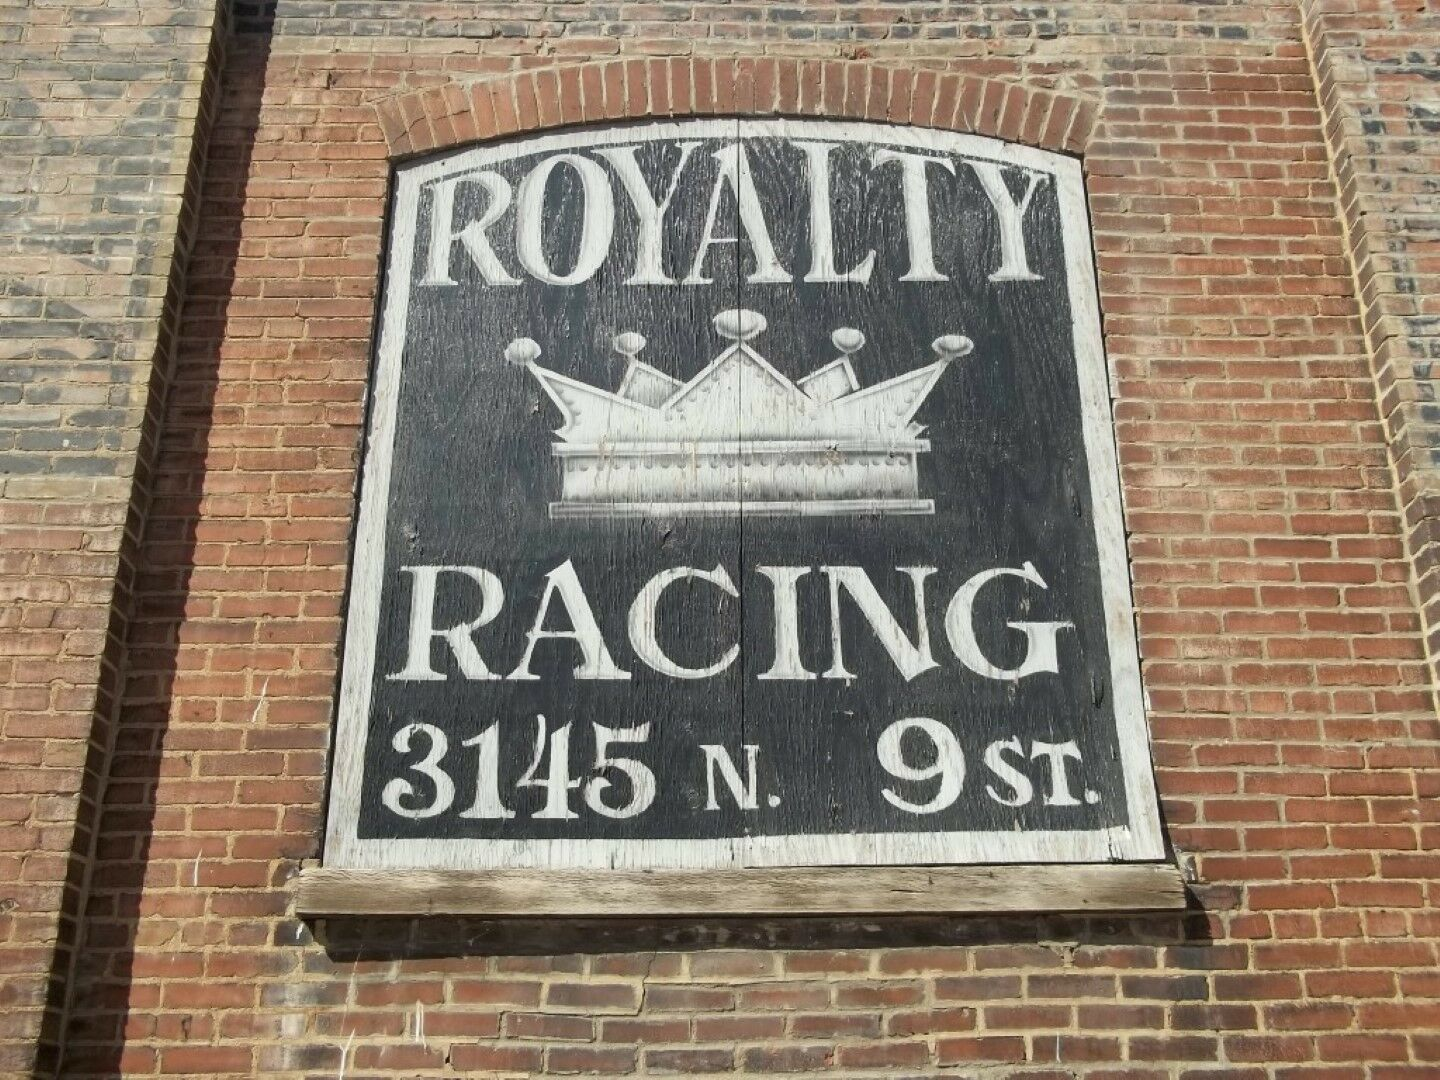 ROYALTY RACING